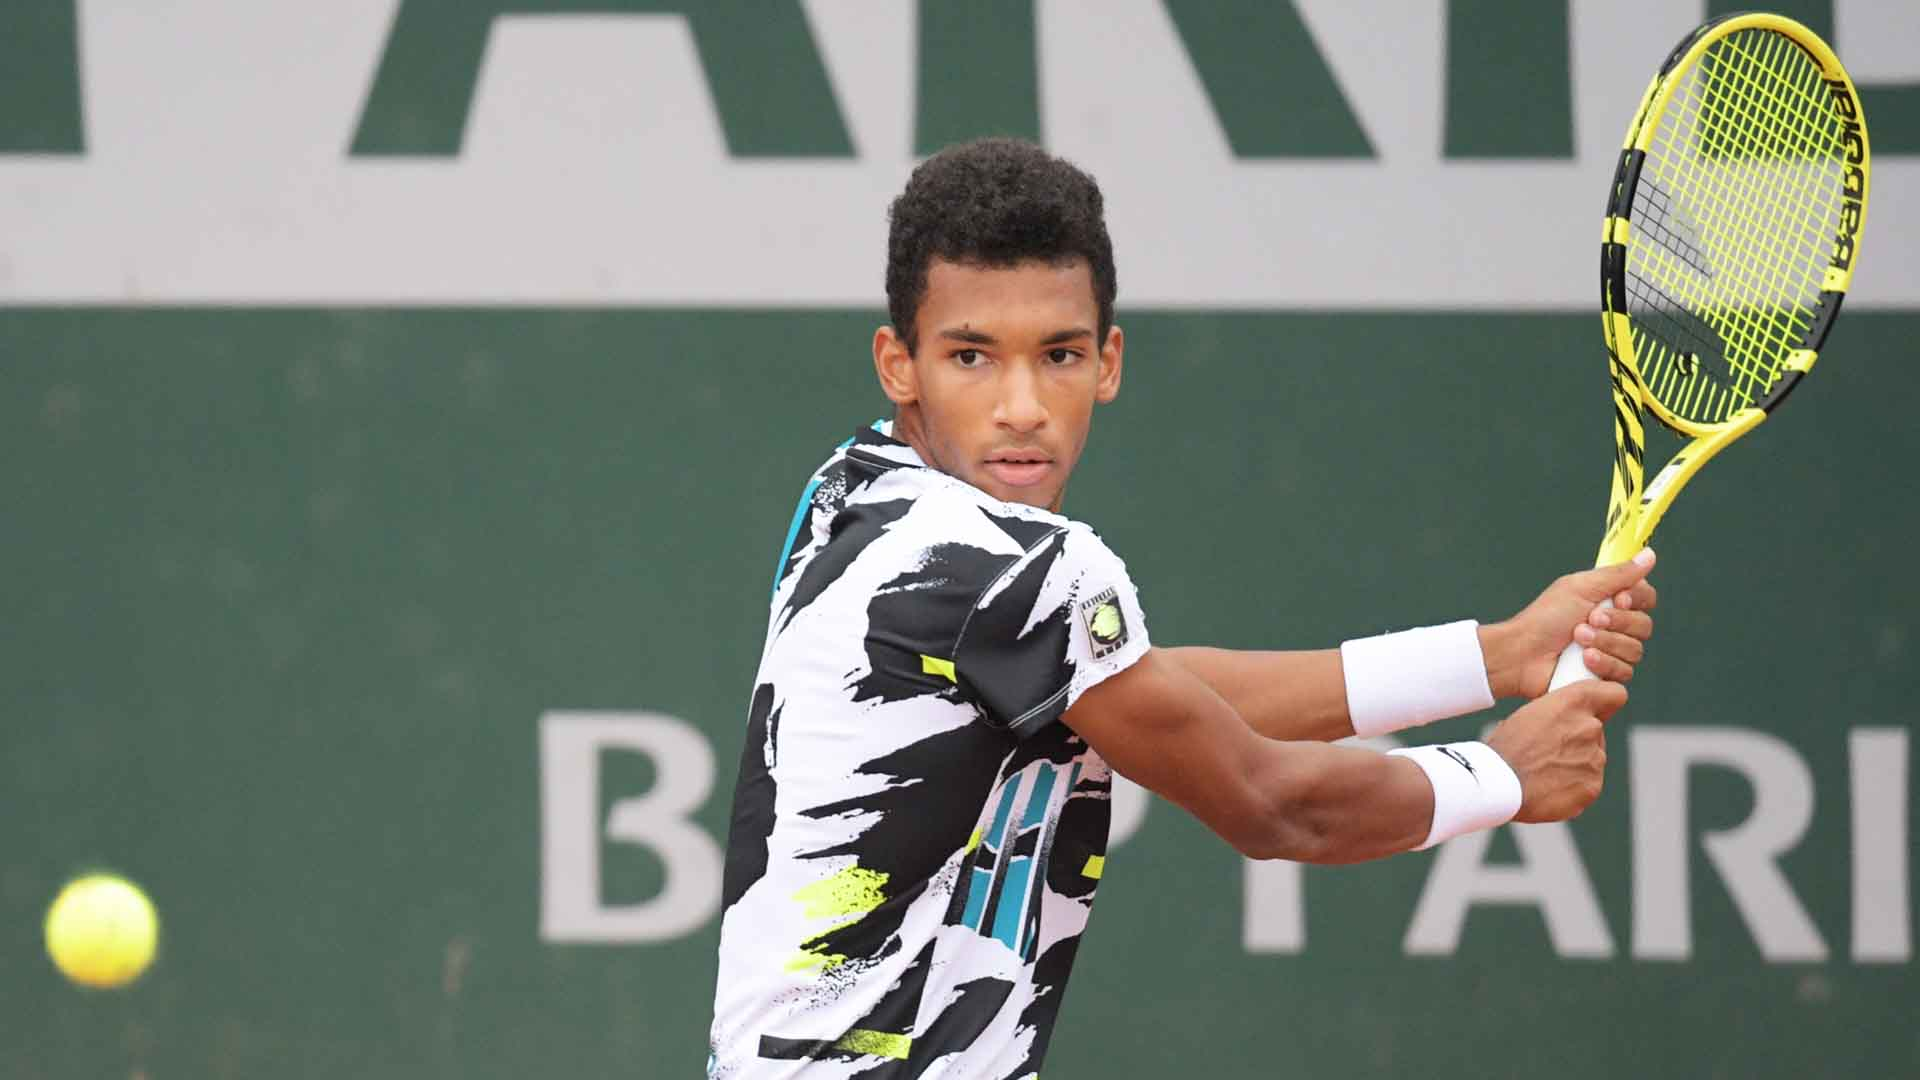 Felix Auger-Aliassime will donate $5 to EduChange for every point he wins during the 2021 ATP Tour season.